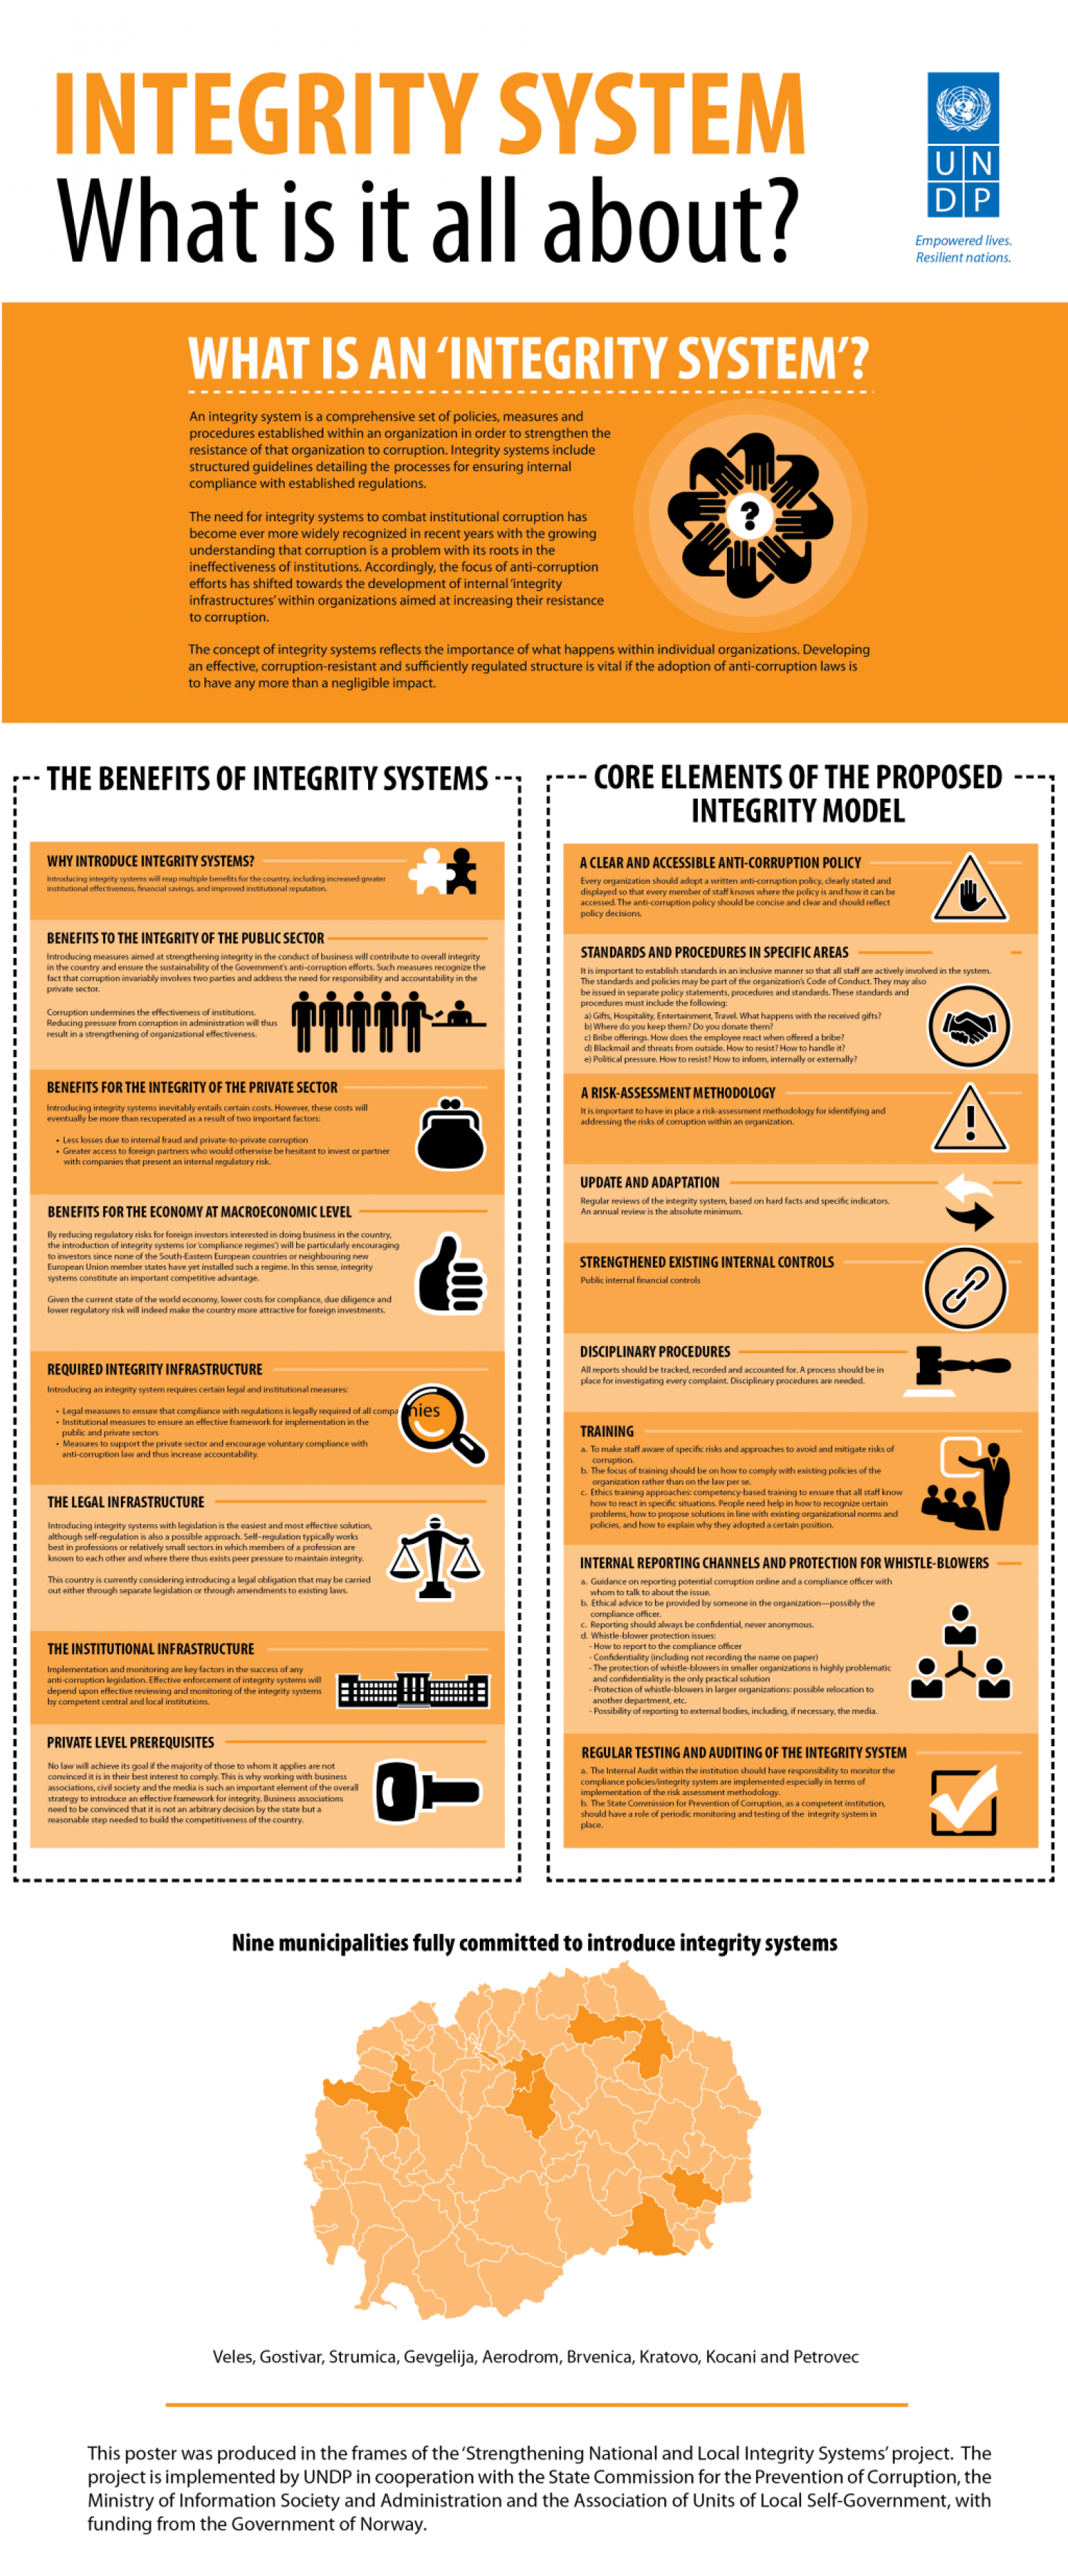 Integrity System - What is it all about? Infographic